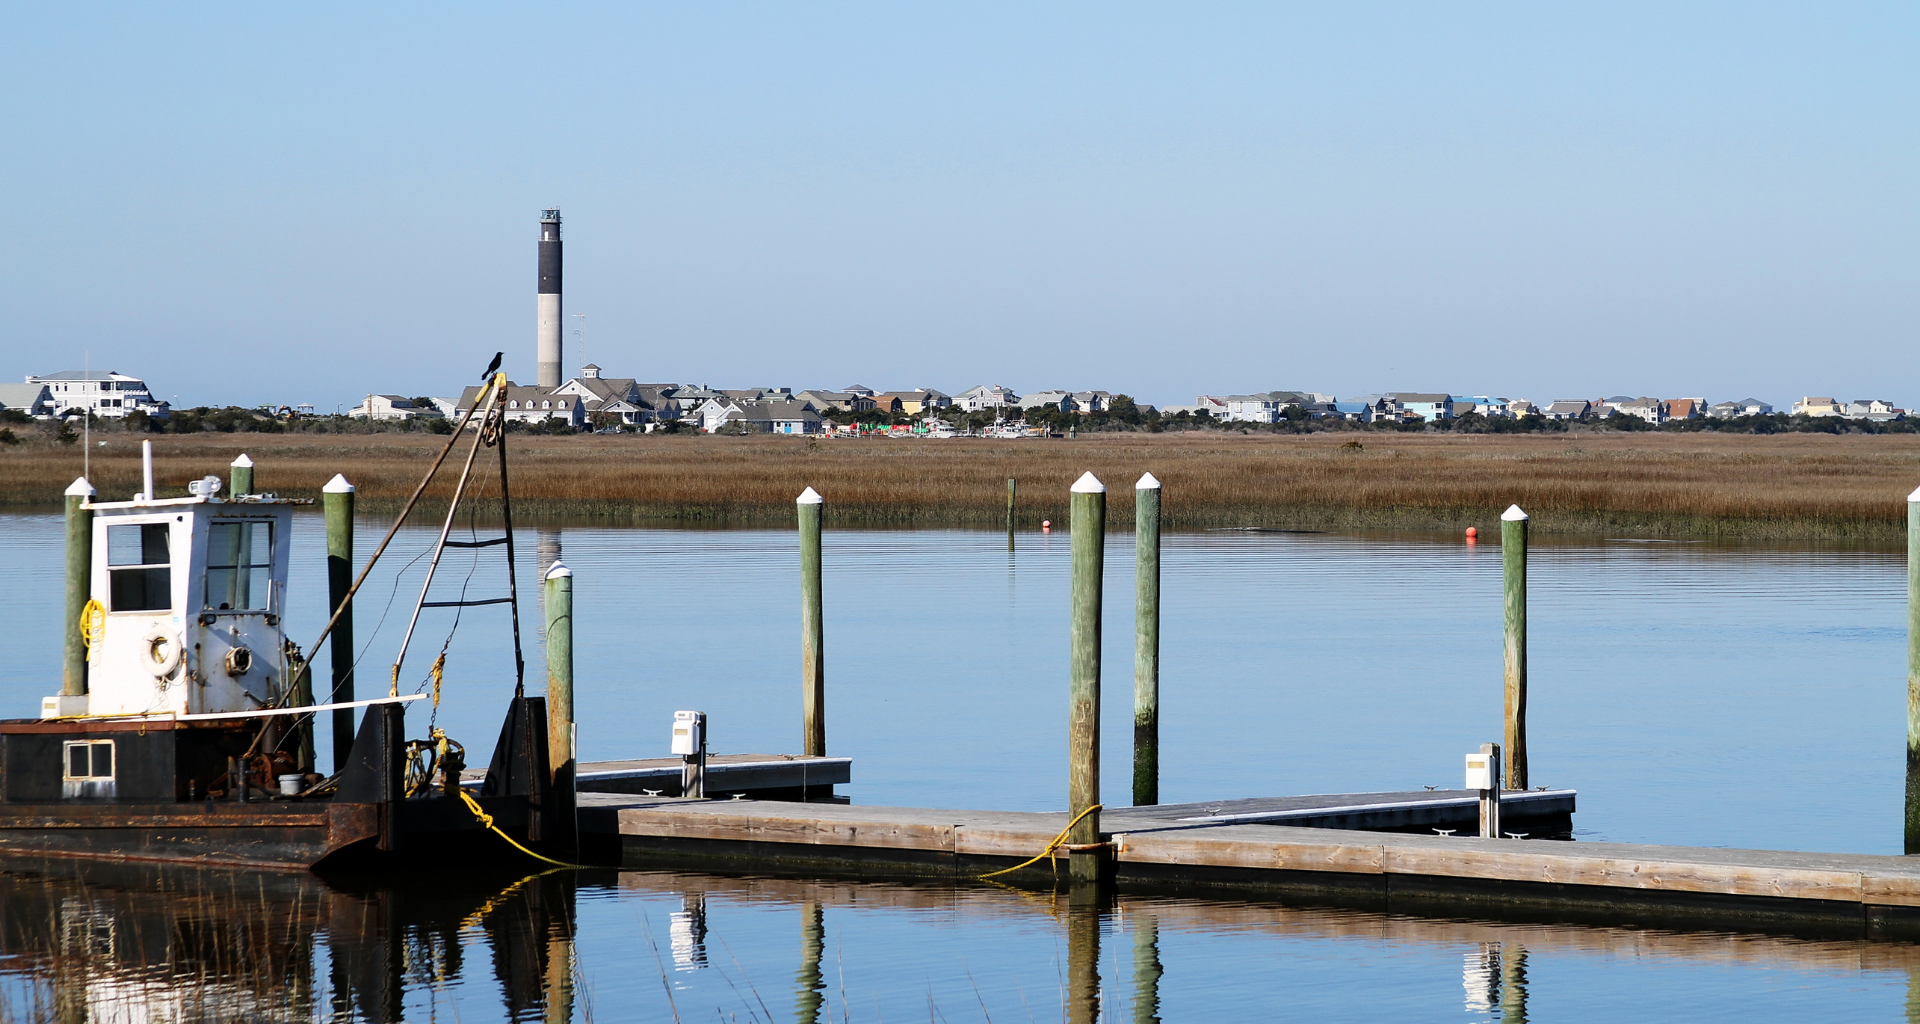 Oak Island, North Carolina docks with a view of town